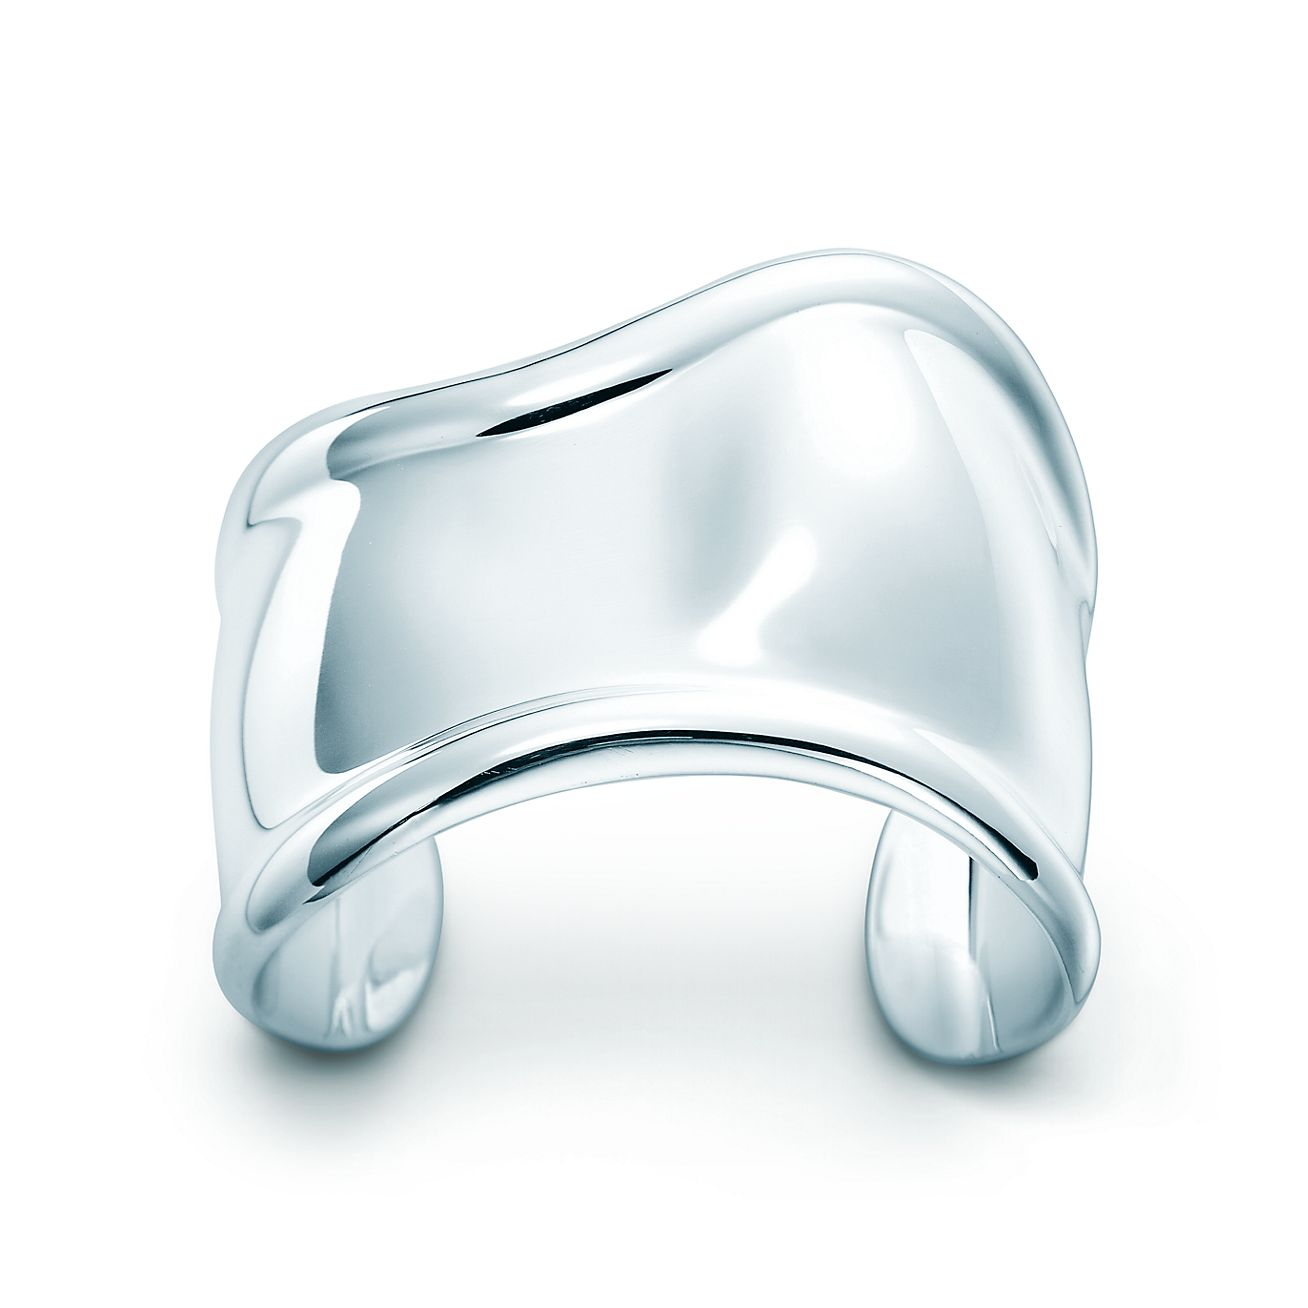 Elsa Peretti Bone cuff in sterling silver, medium, right wrist - Size Medium Tiffany & Co.